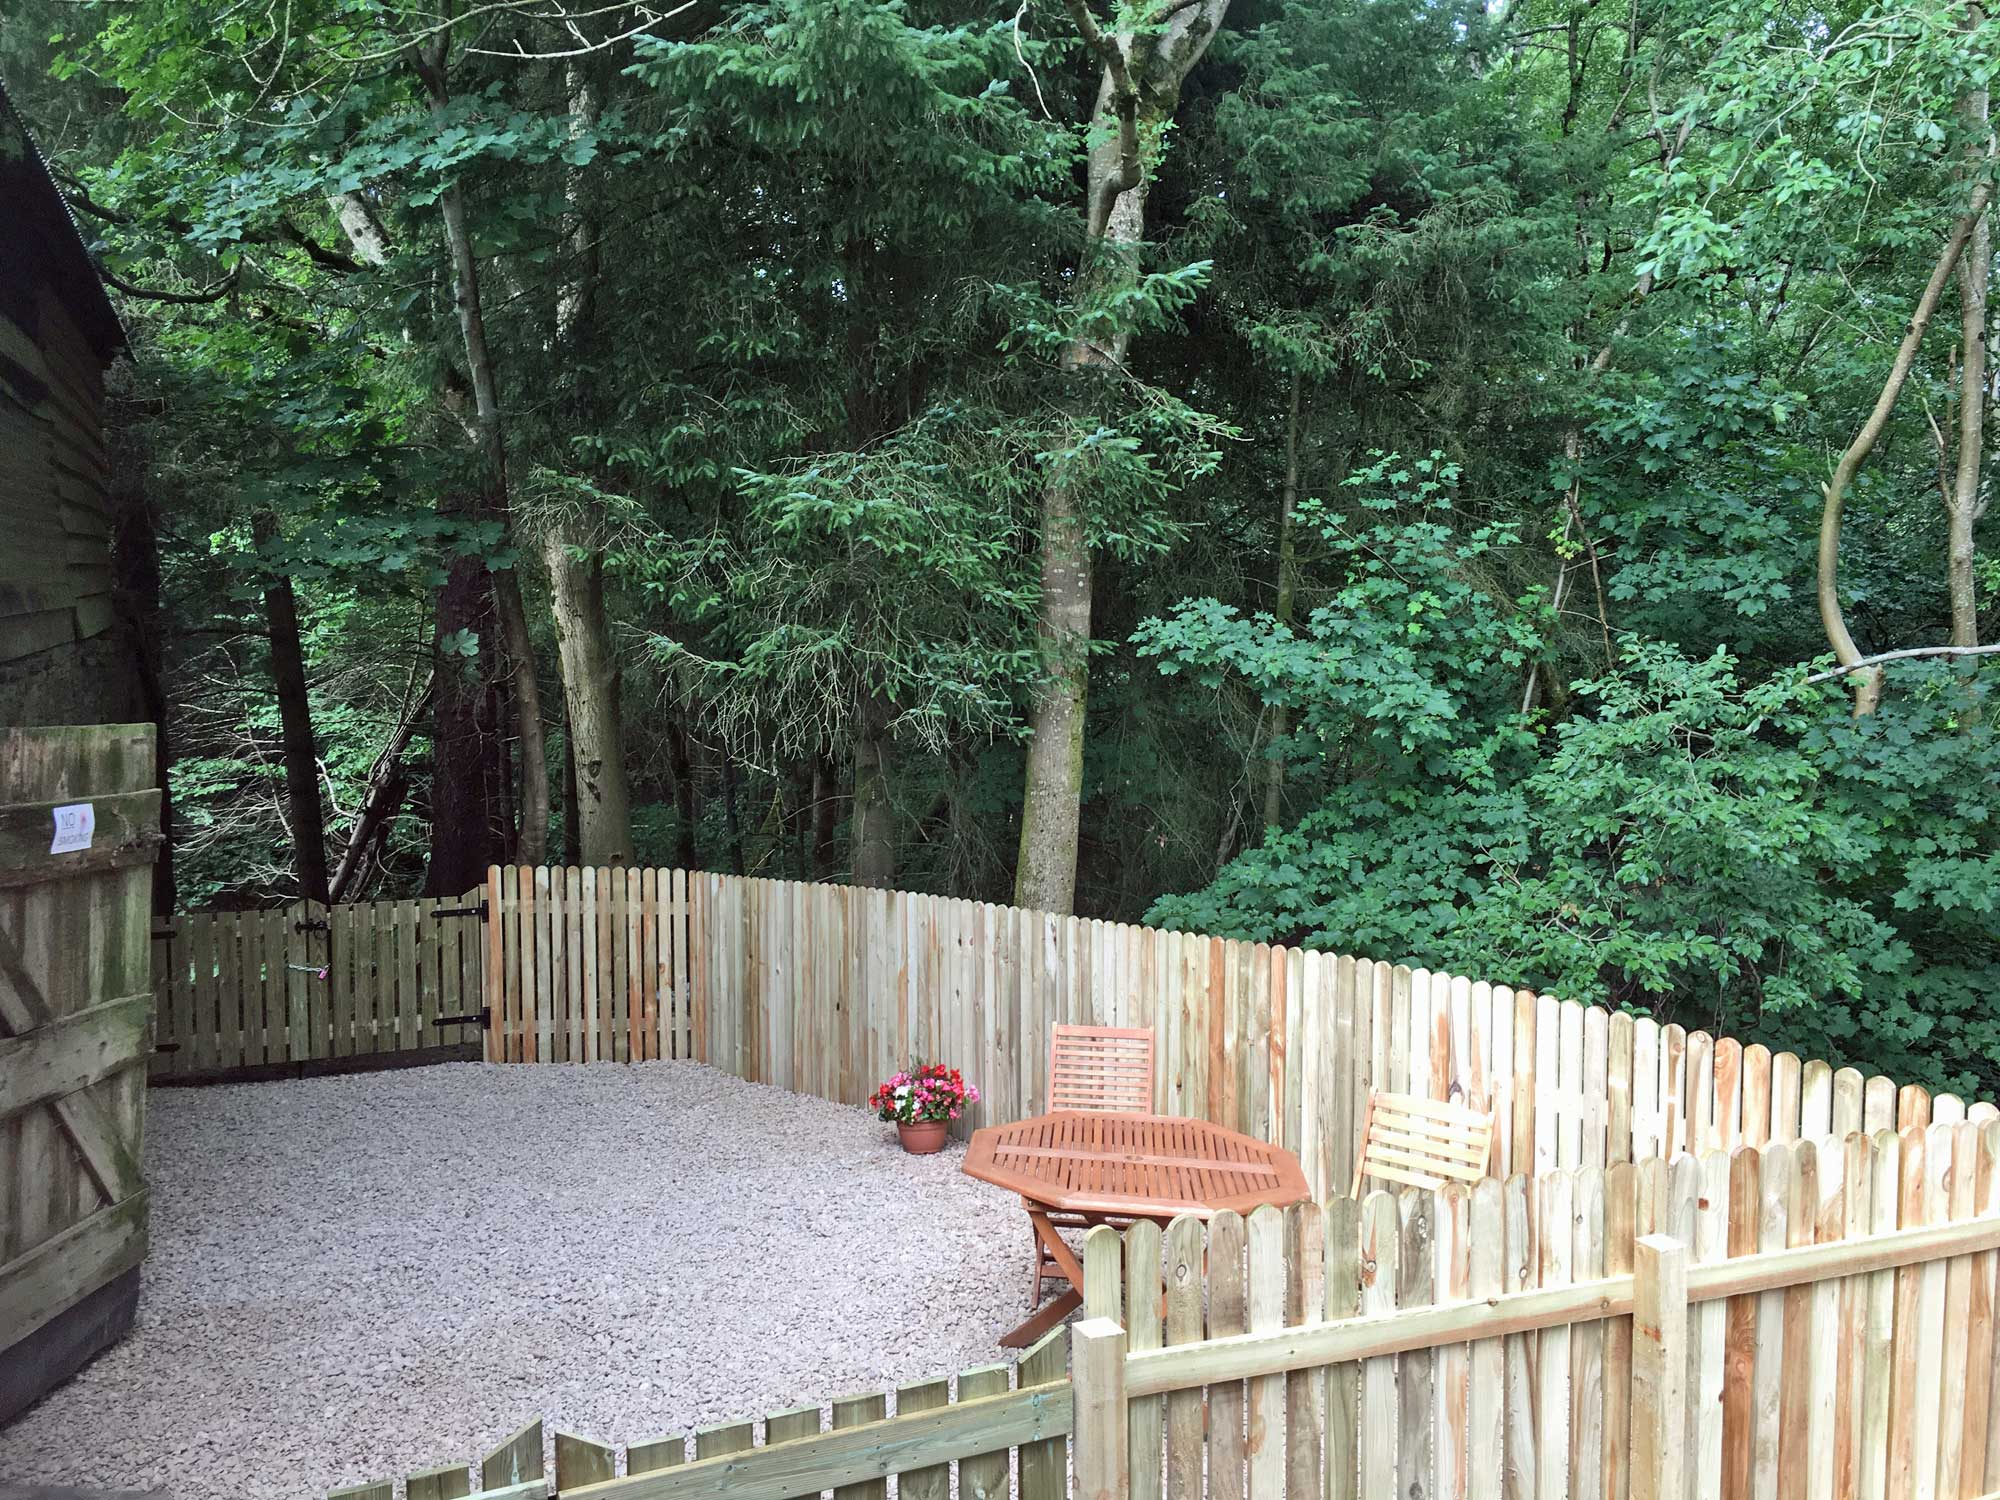 Drovers woodland seating area